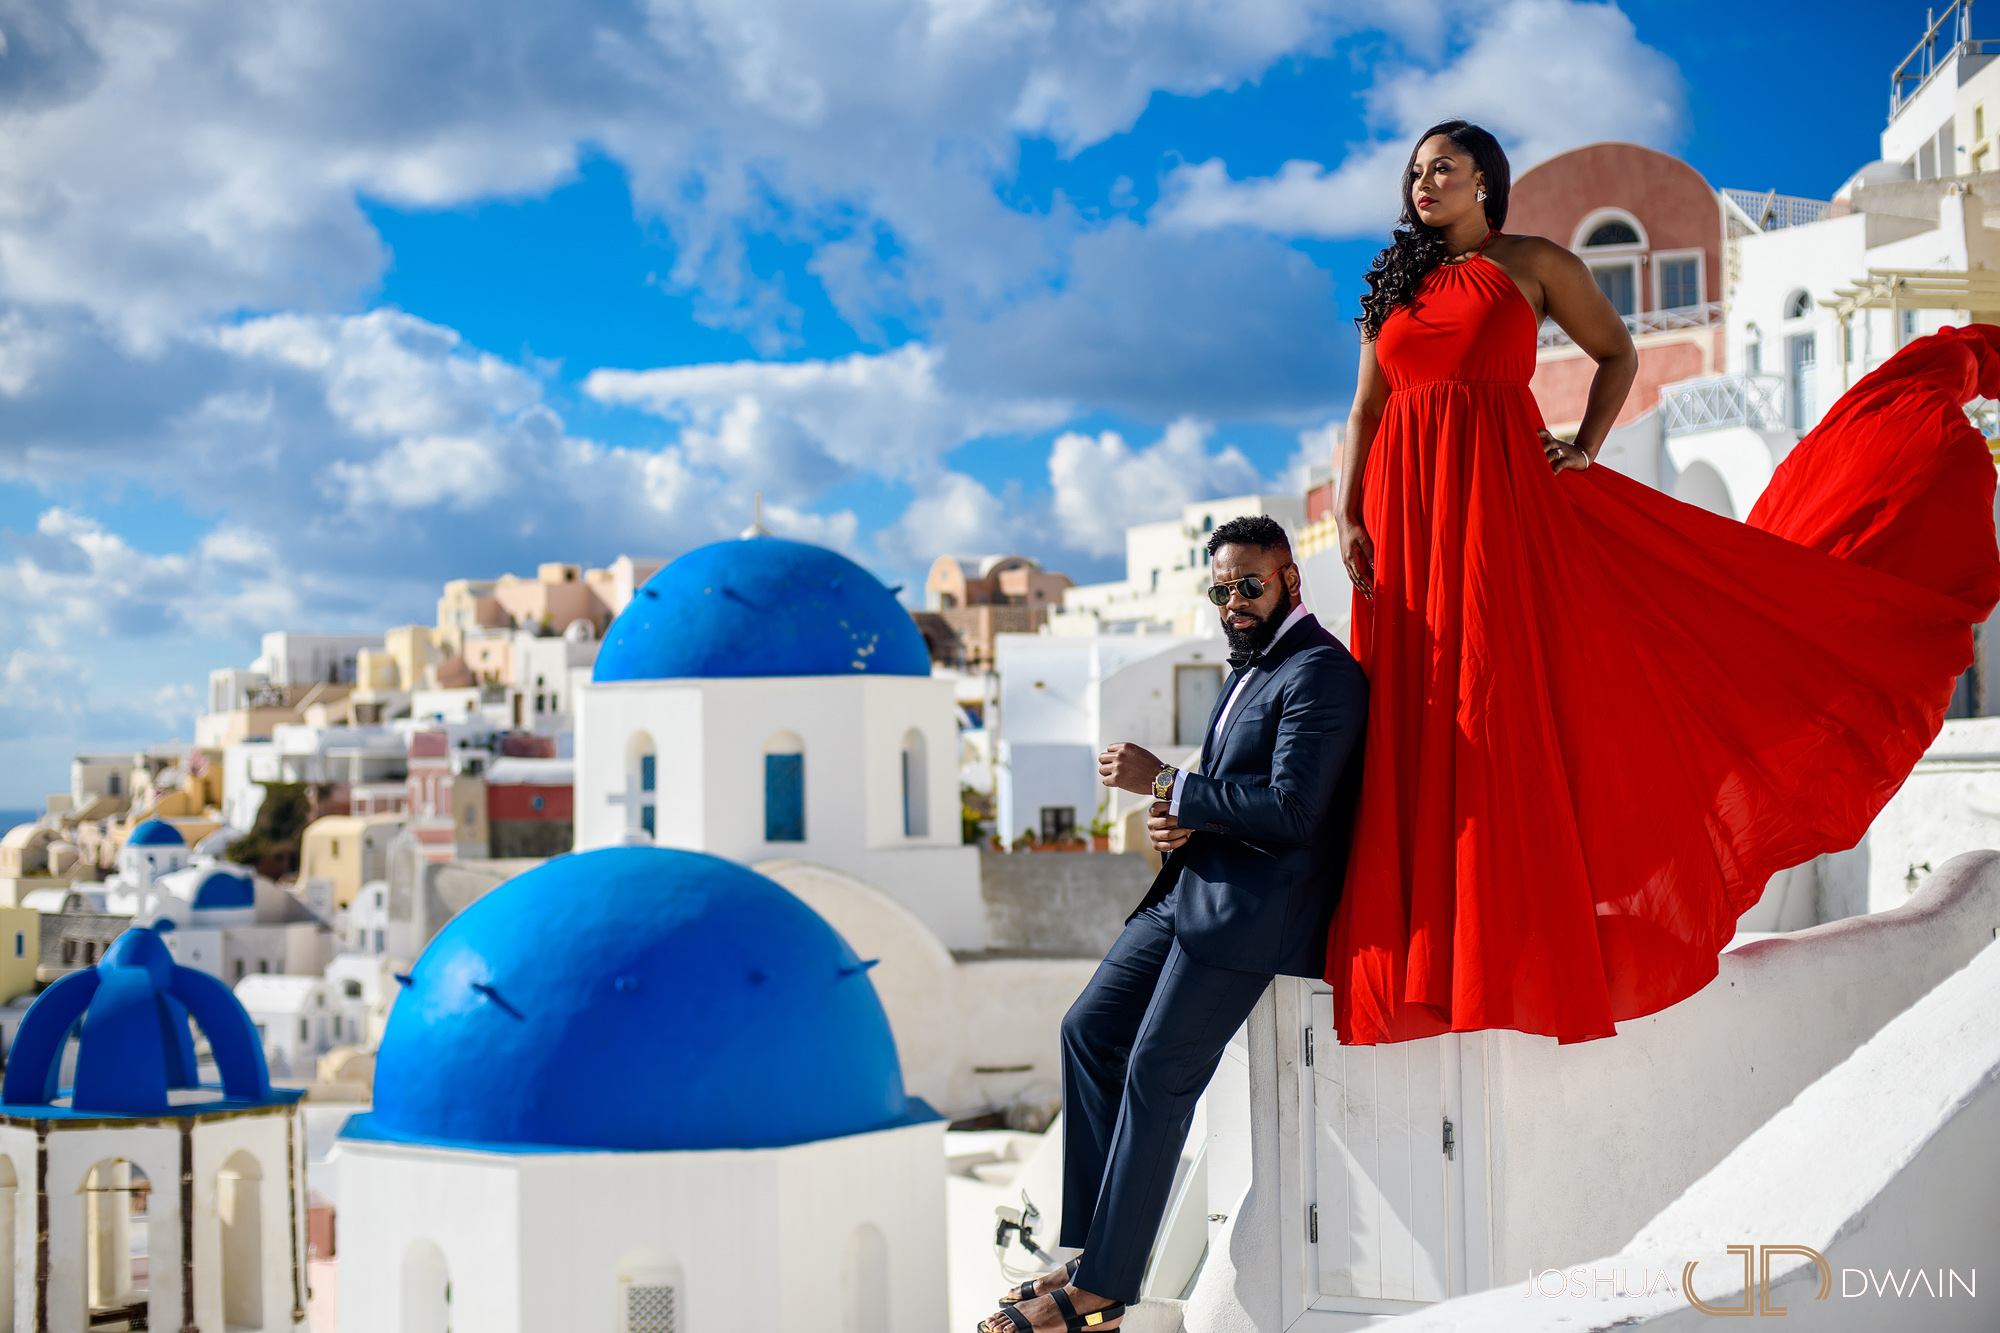 ekene-issac-12-santorini-oia-thira-greece-wedding-engagement-photos-african-american-destination-photographer-joshua-dwain